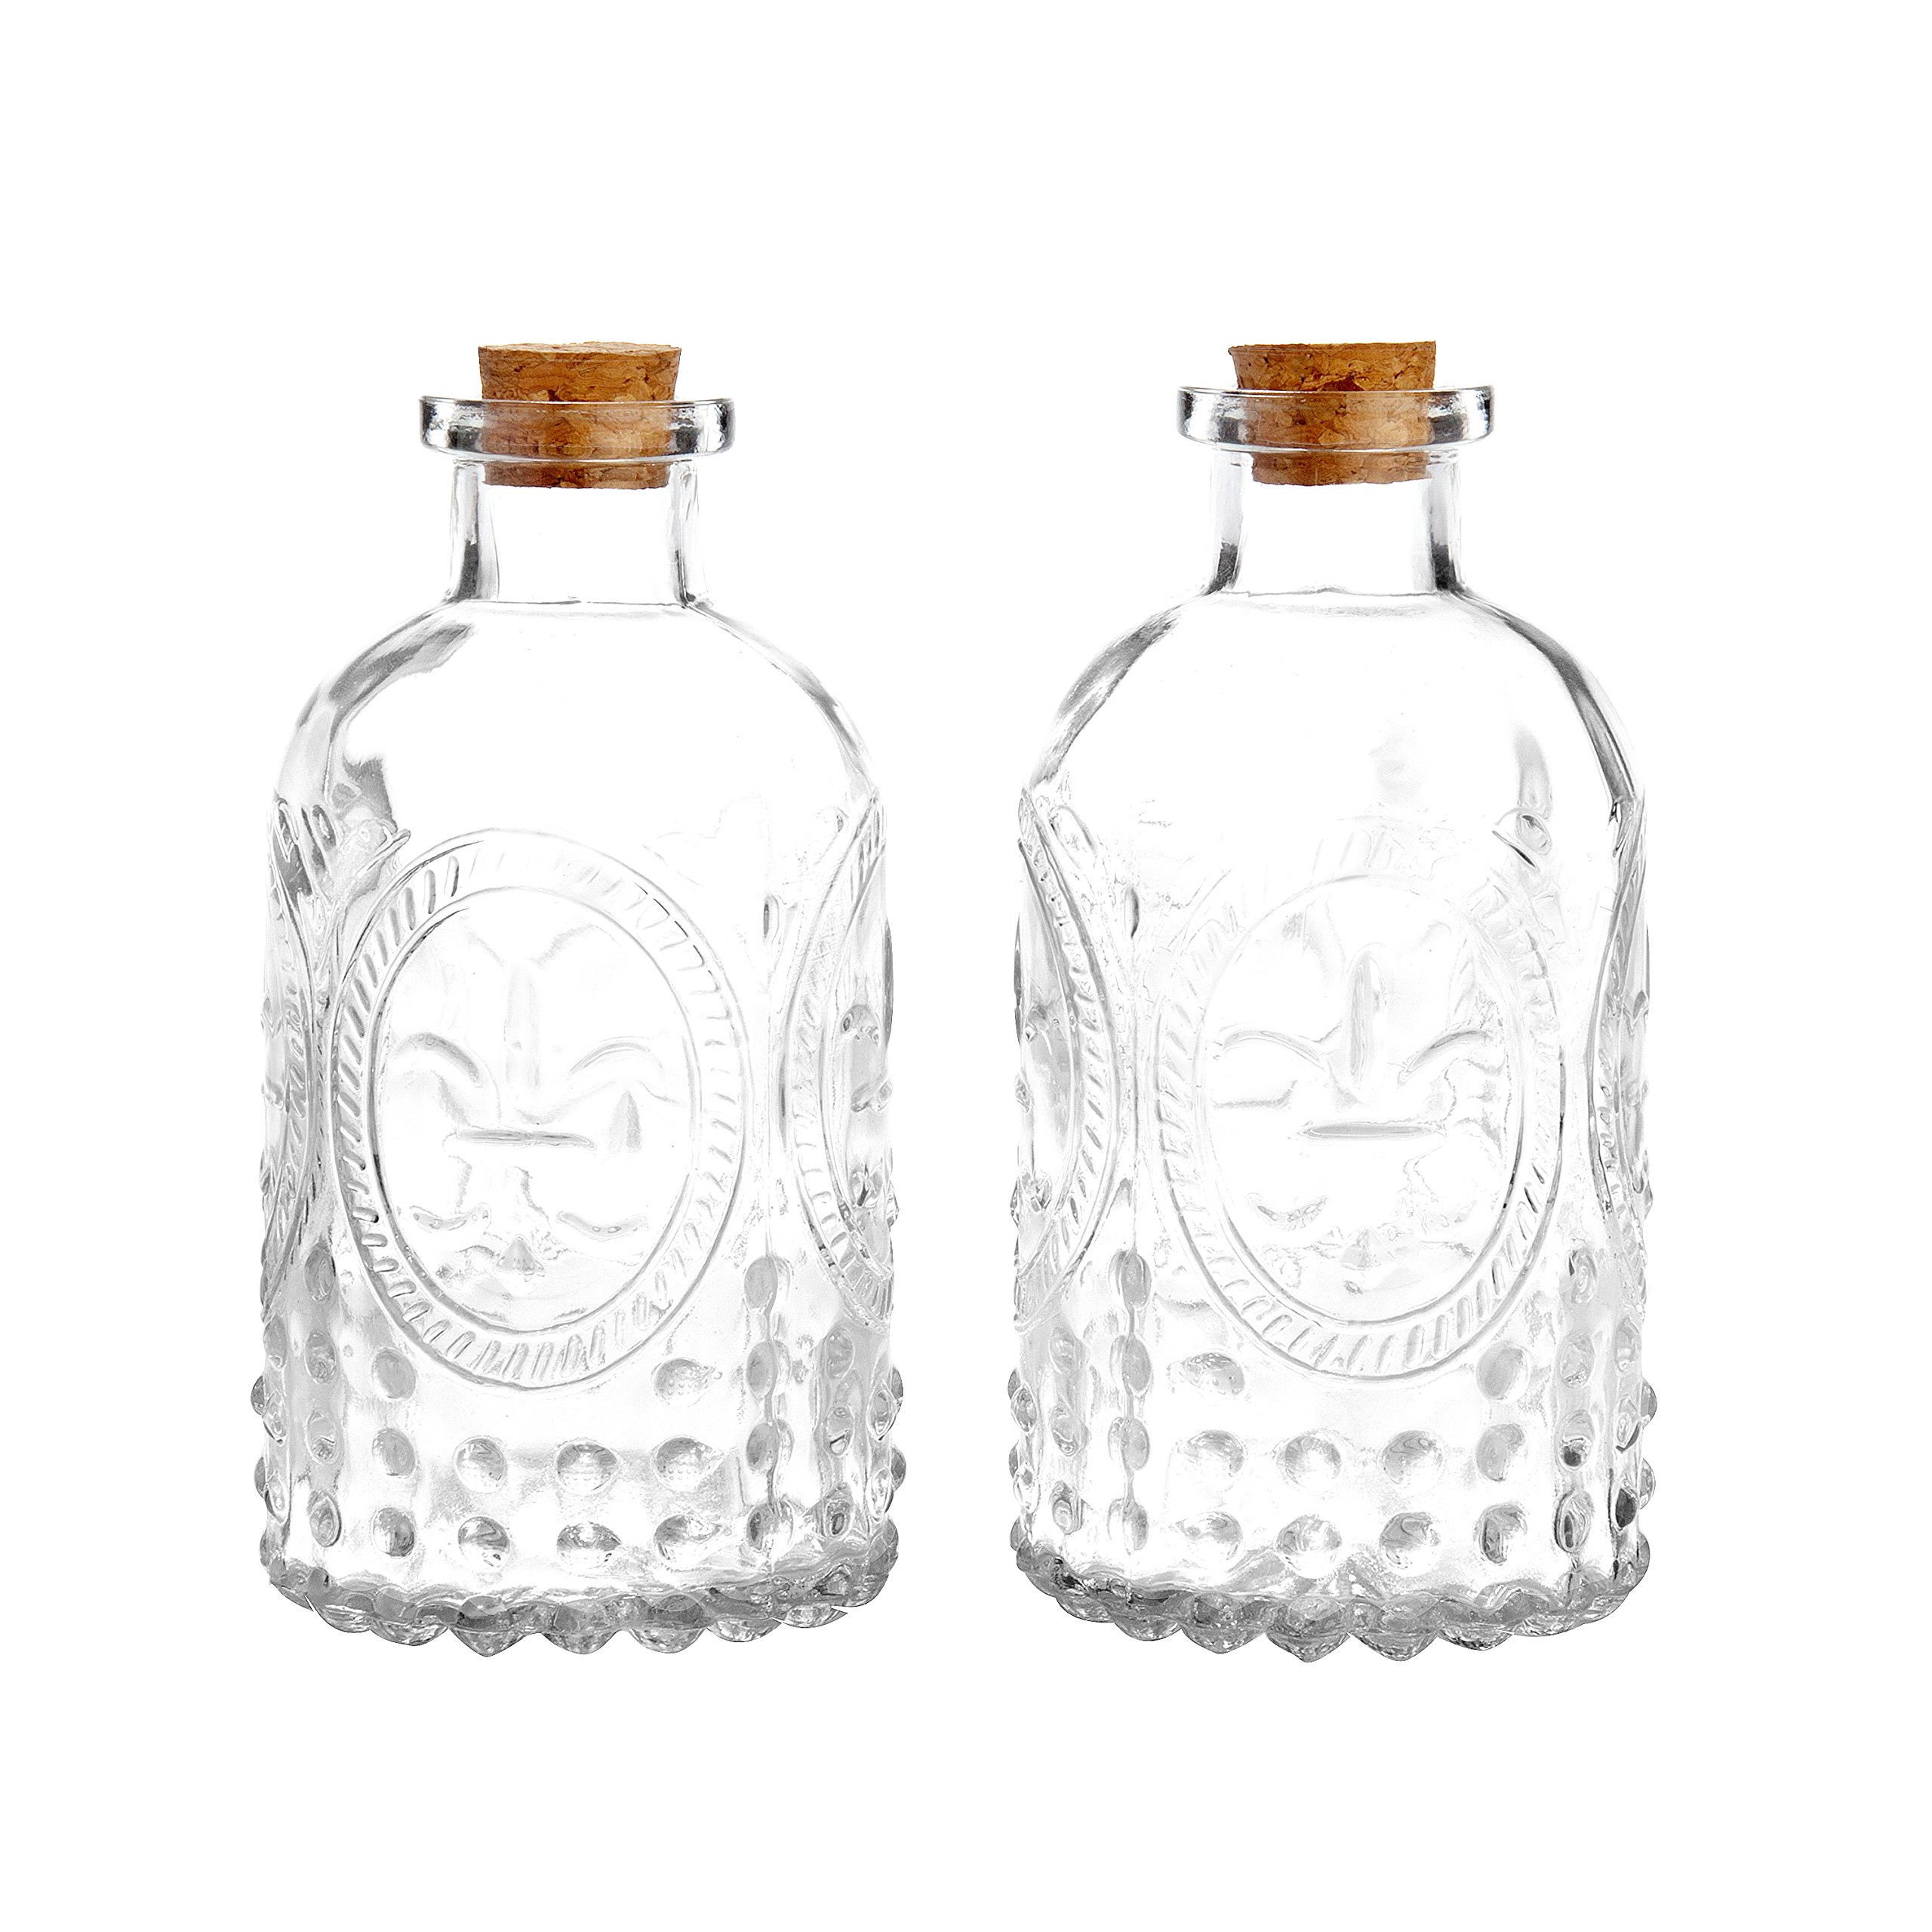 Vintage Design Embossed Clear Glass Bottles, Apothecary Flower Bud Vase with Cork Lid, Set of 2